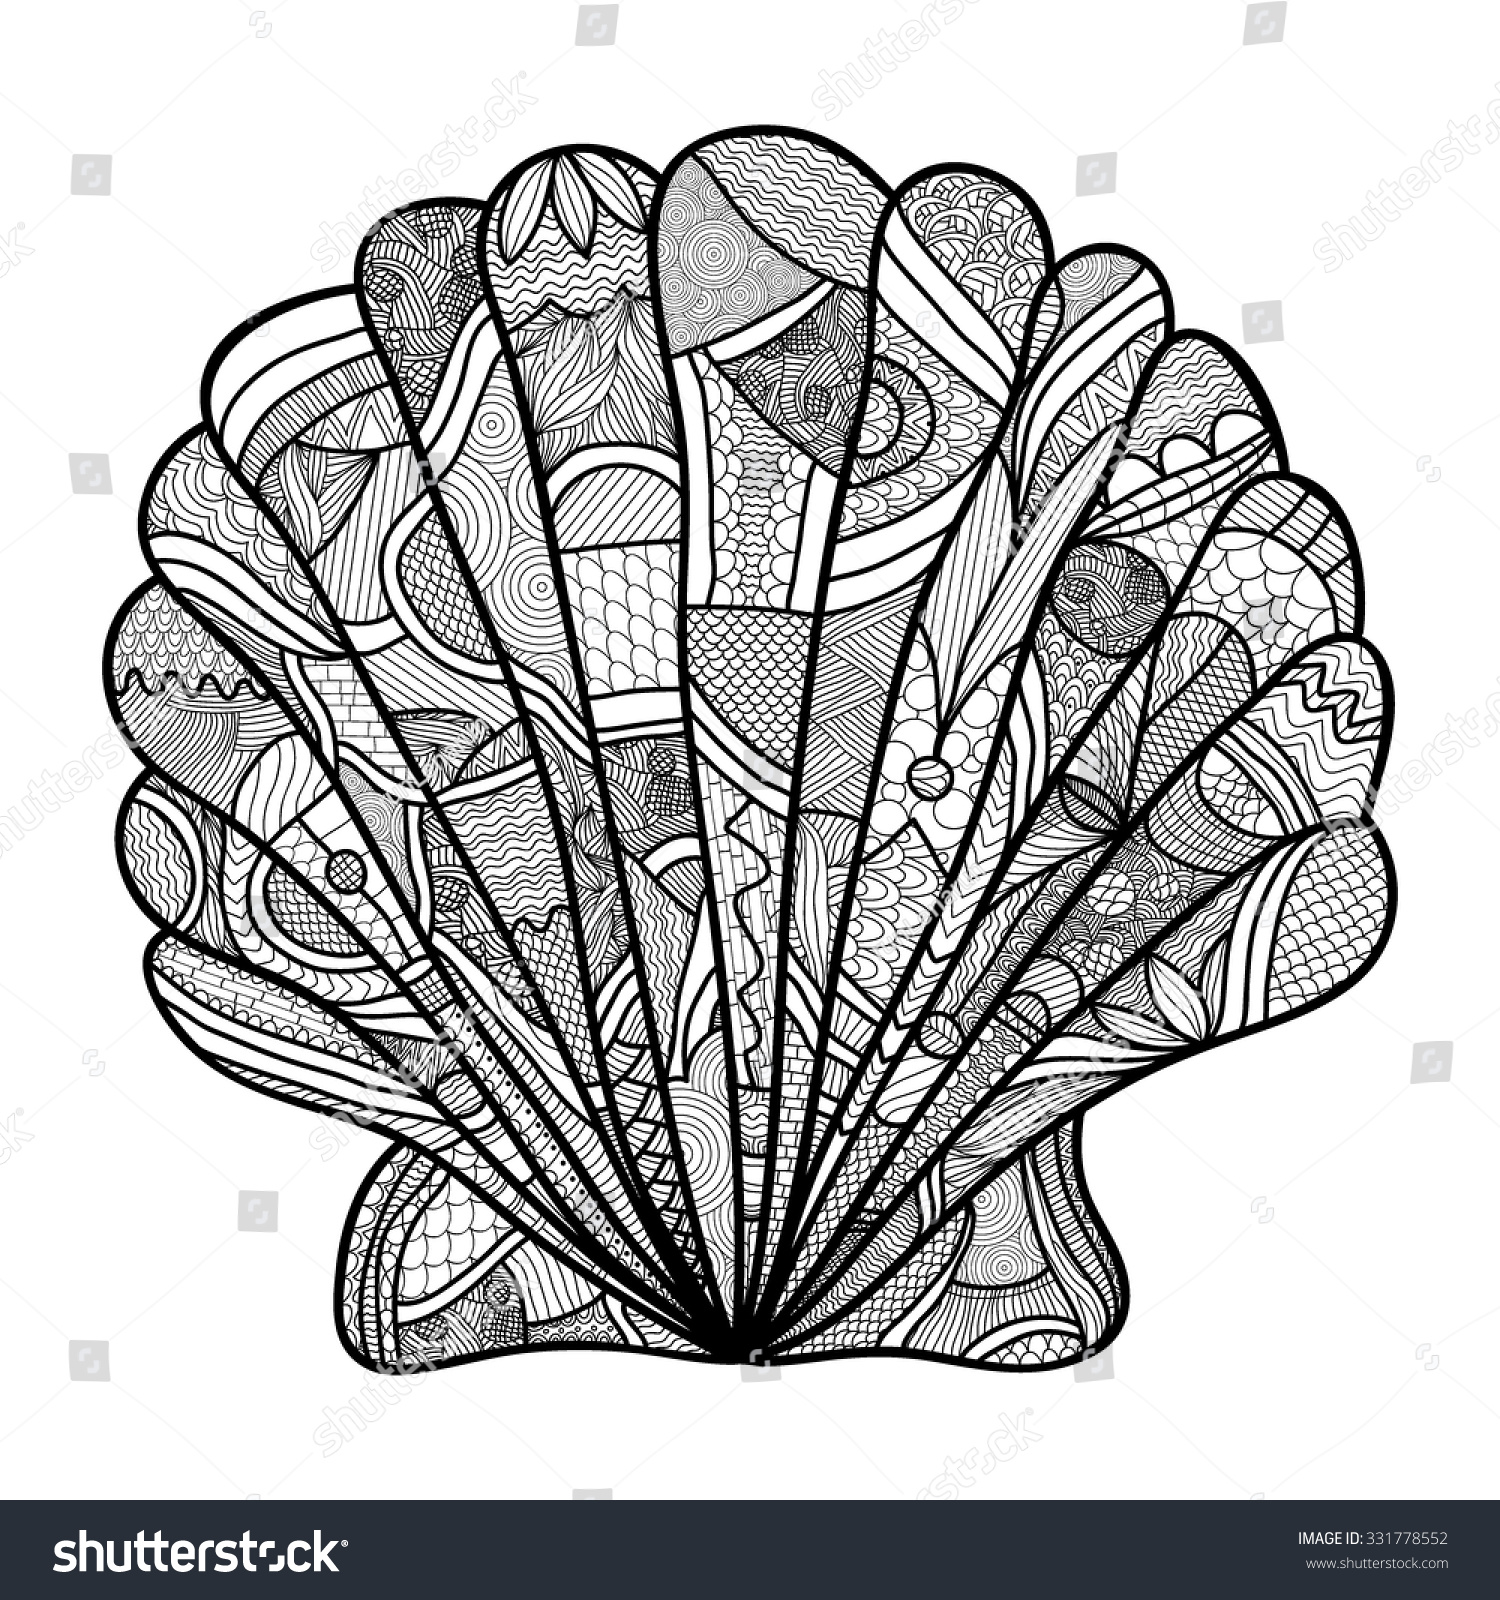 seashell hand drawn shell anti stress coloring page for adult with